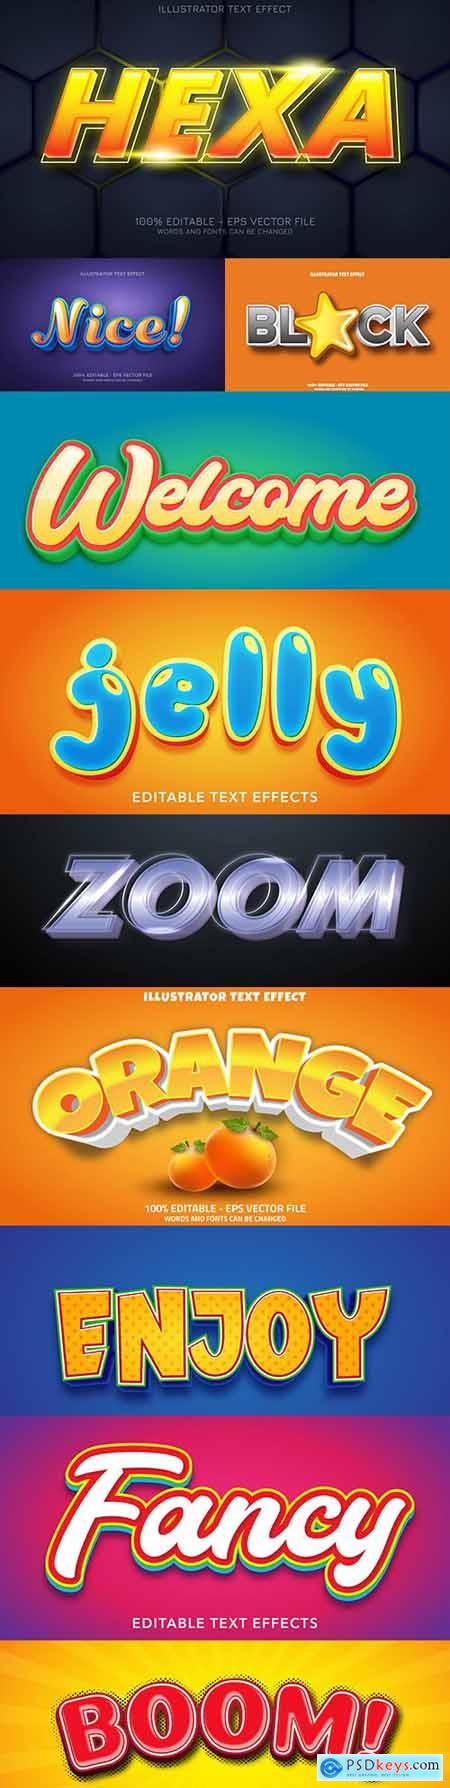 Editable font effect text collection illustration design 157